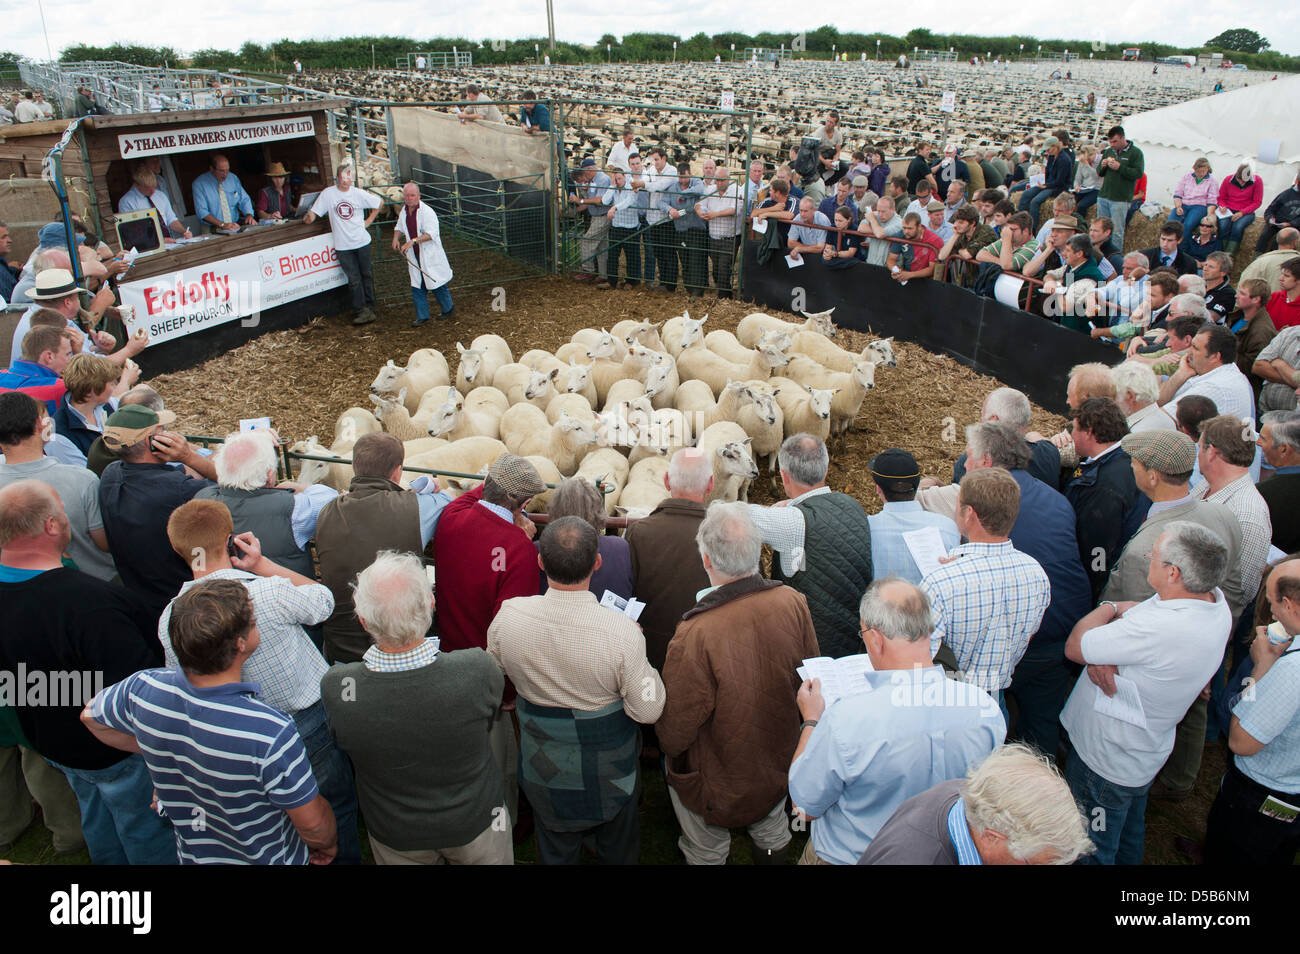 Breeding ewes in the ring at Thame sheep fair 2012 - Stock Image